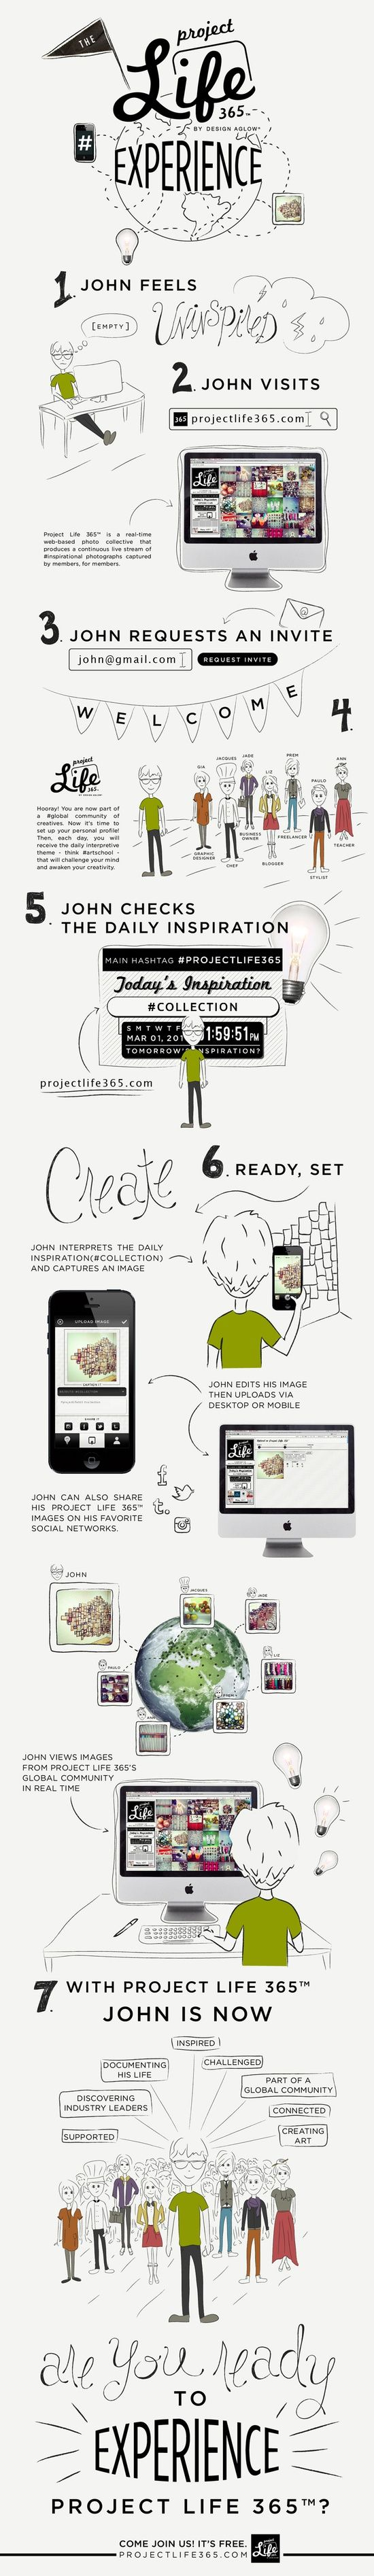 Infographic design | www.projectlife365.com (Great integration of photo and illusstration and type!)